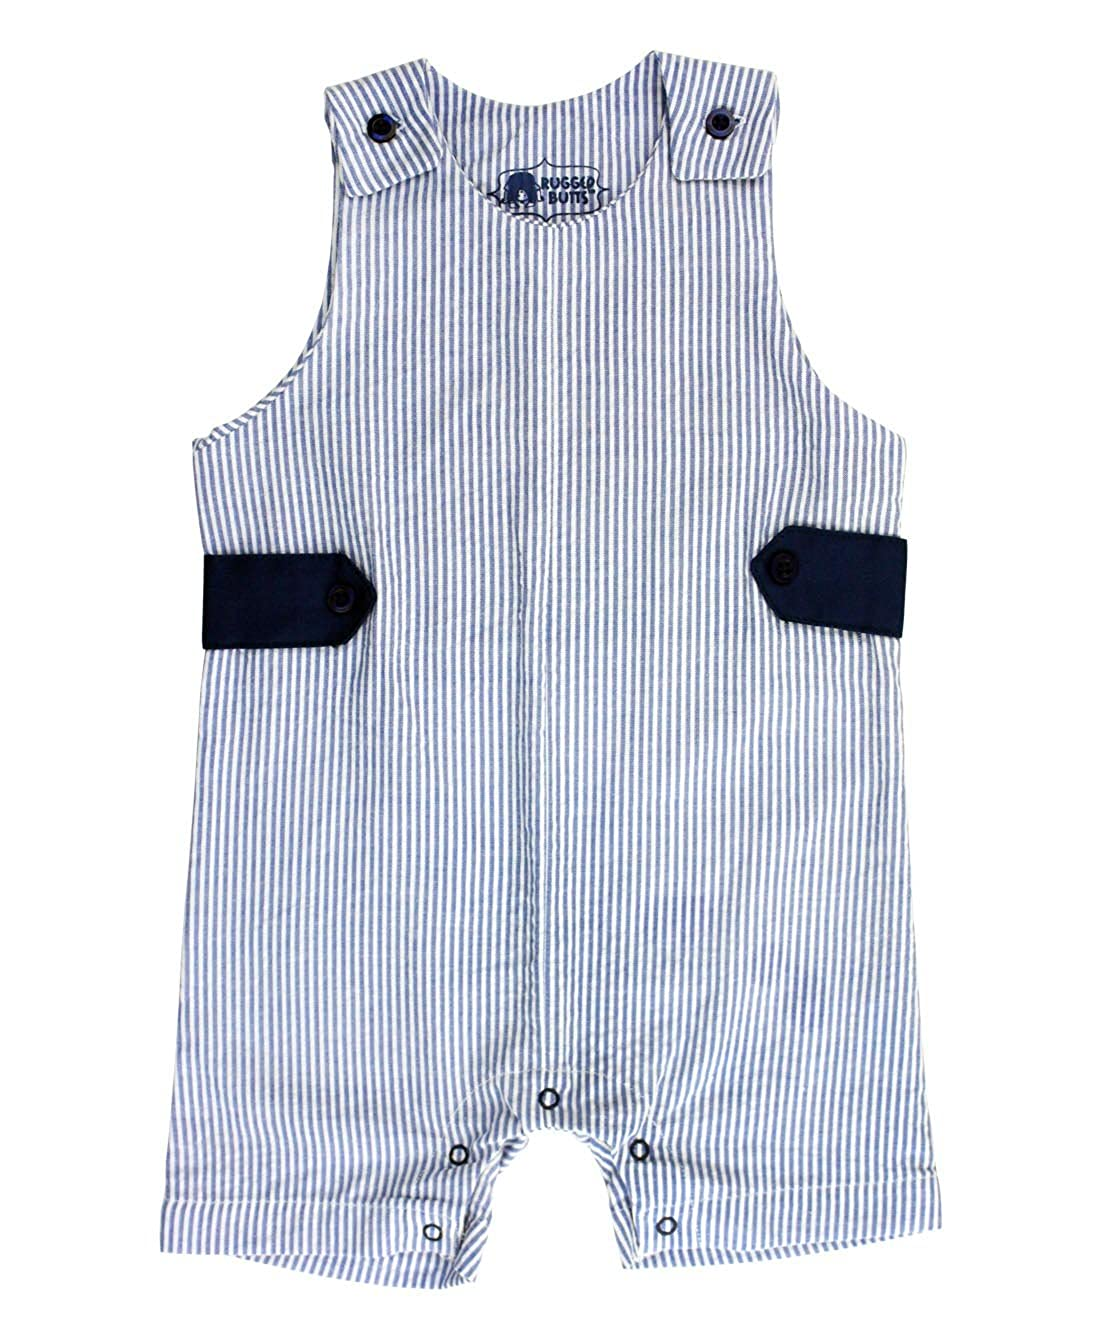 d21ffc673 Amazon.com: RuggedButts Baby/Toddler Boys Jon Jon Romper One-Piece Overall  Shortall: Clothing